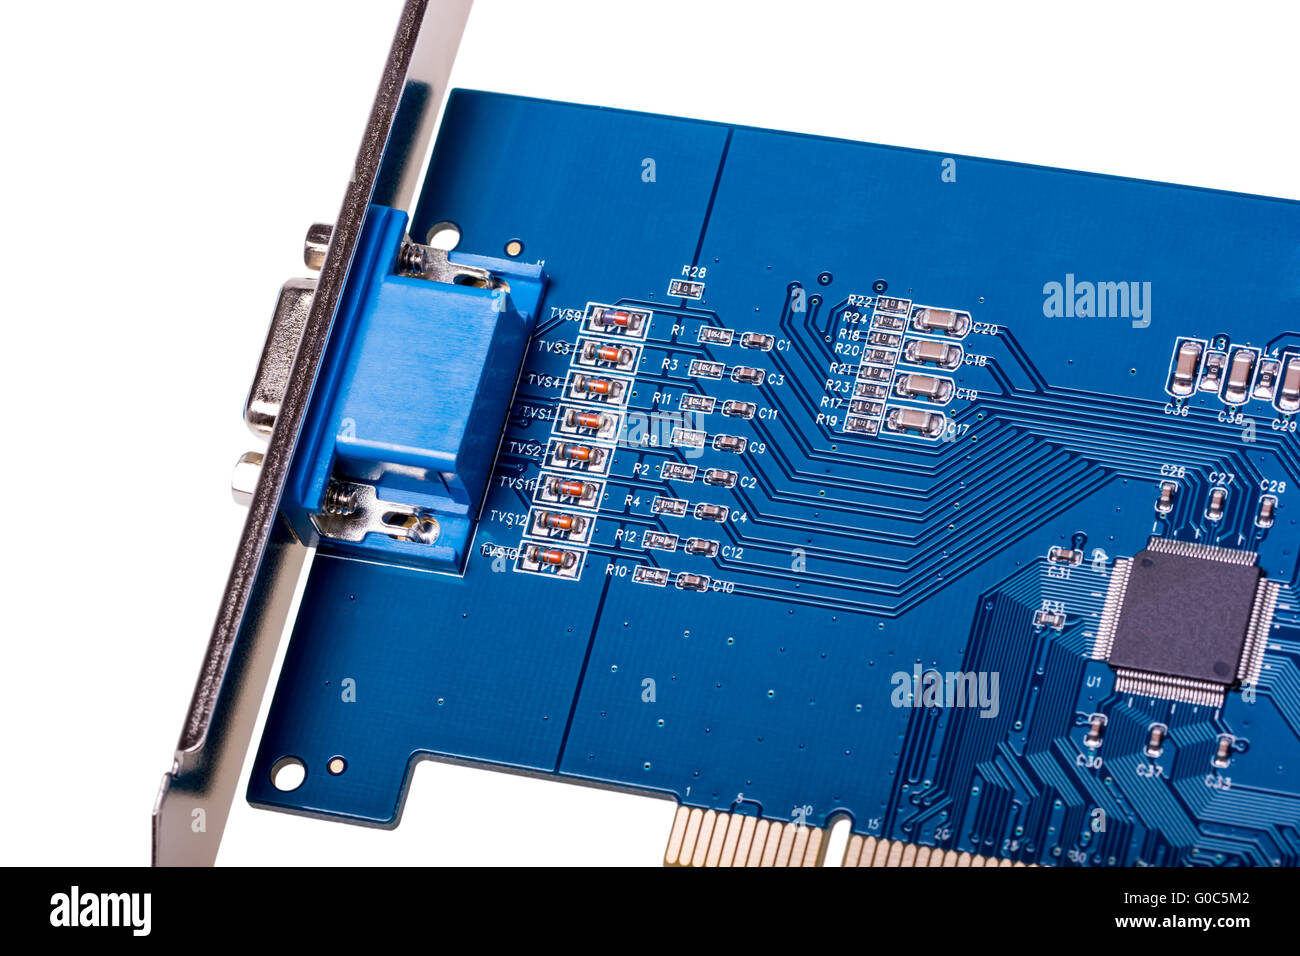 Computer video capture card isolated on white - Stock Image